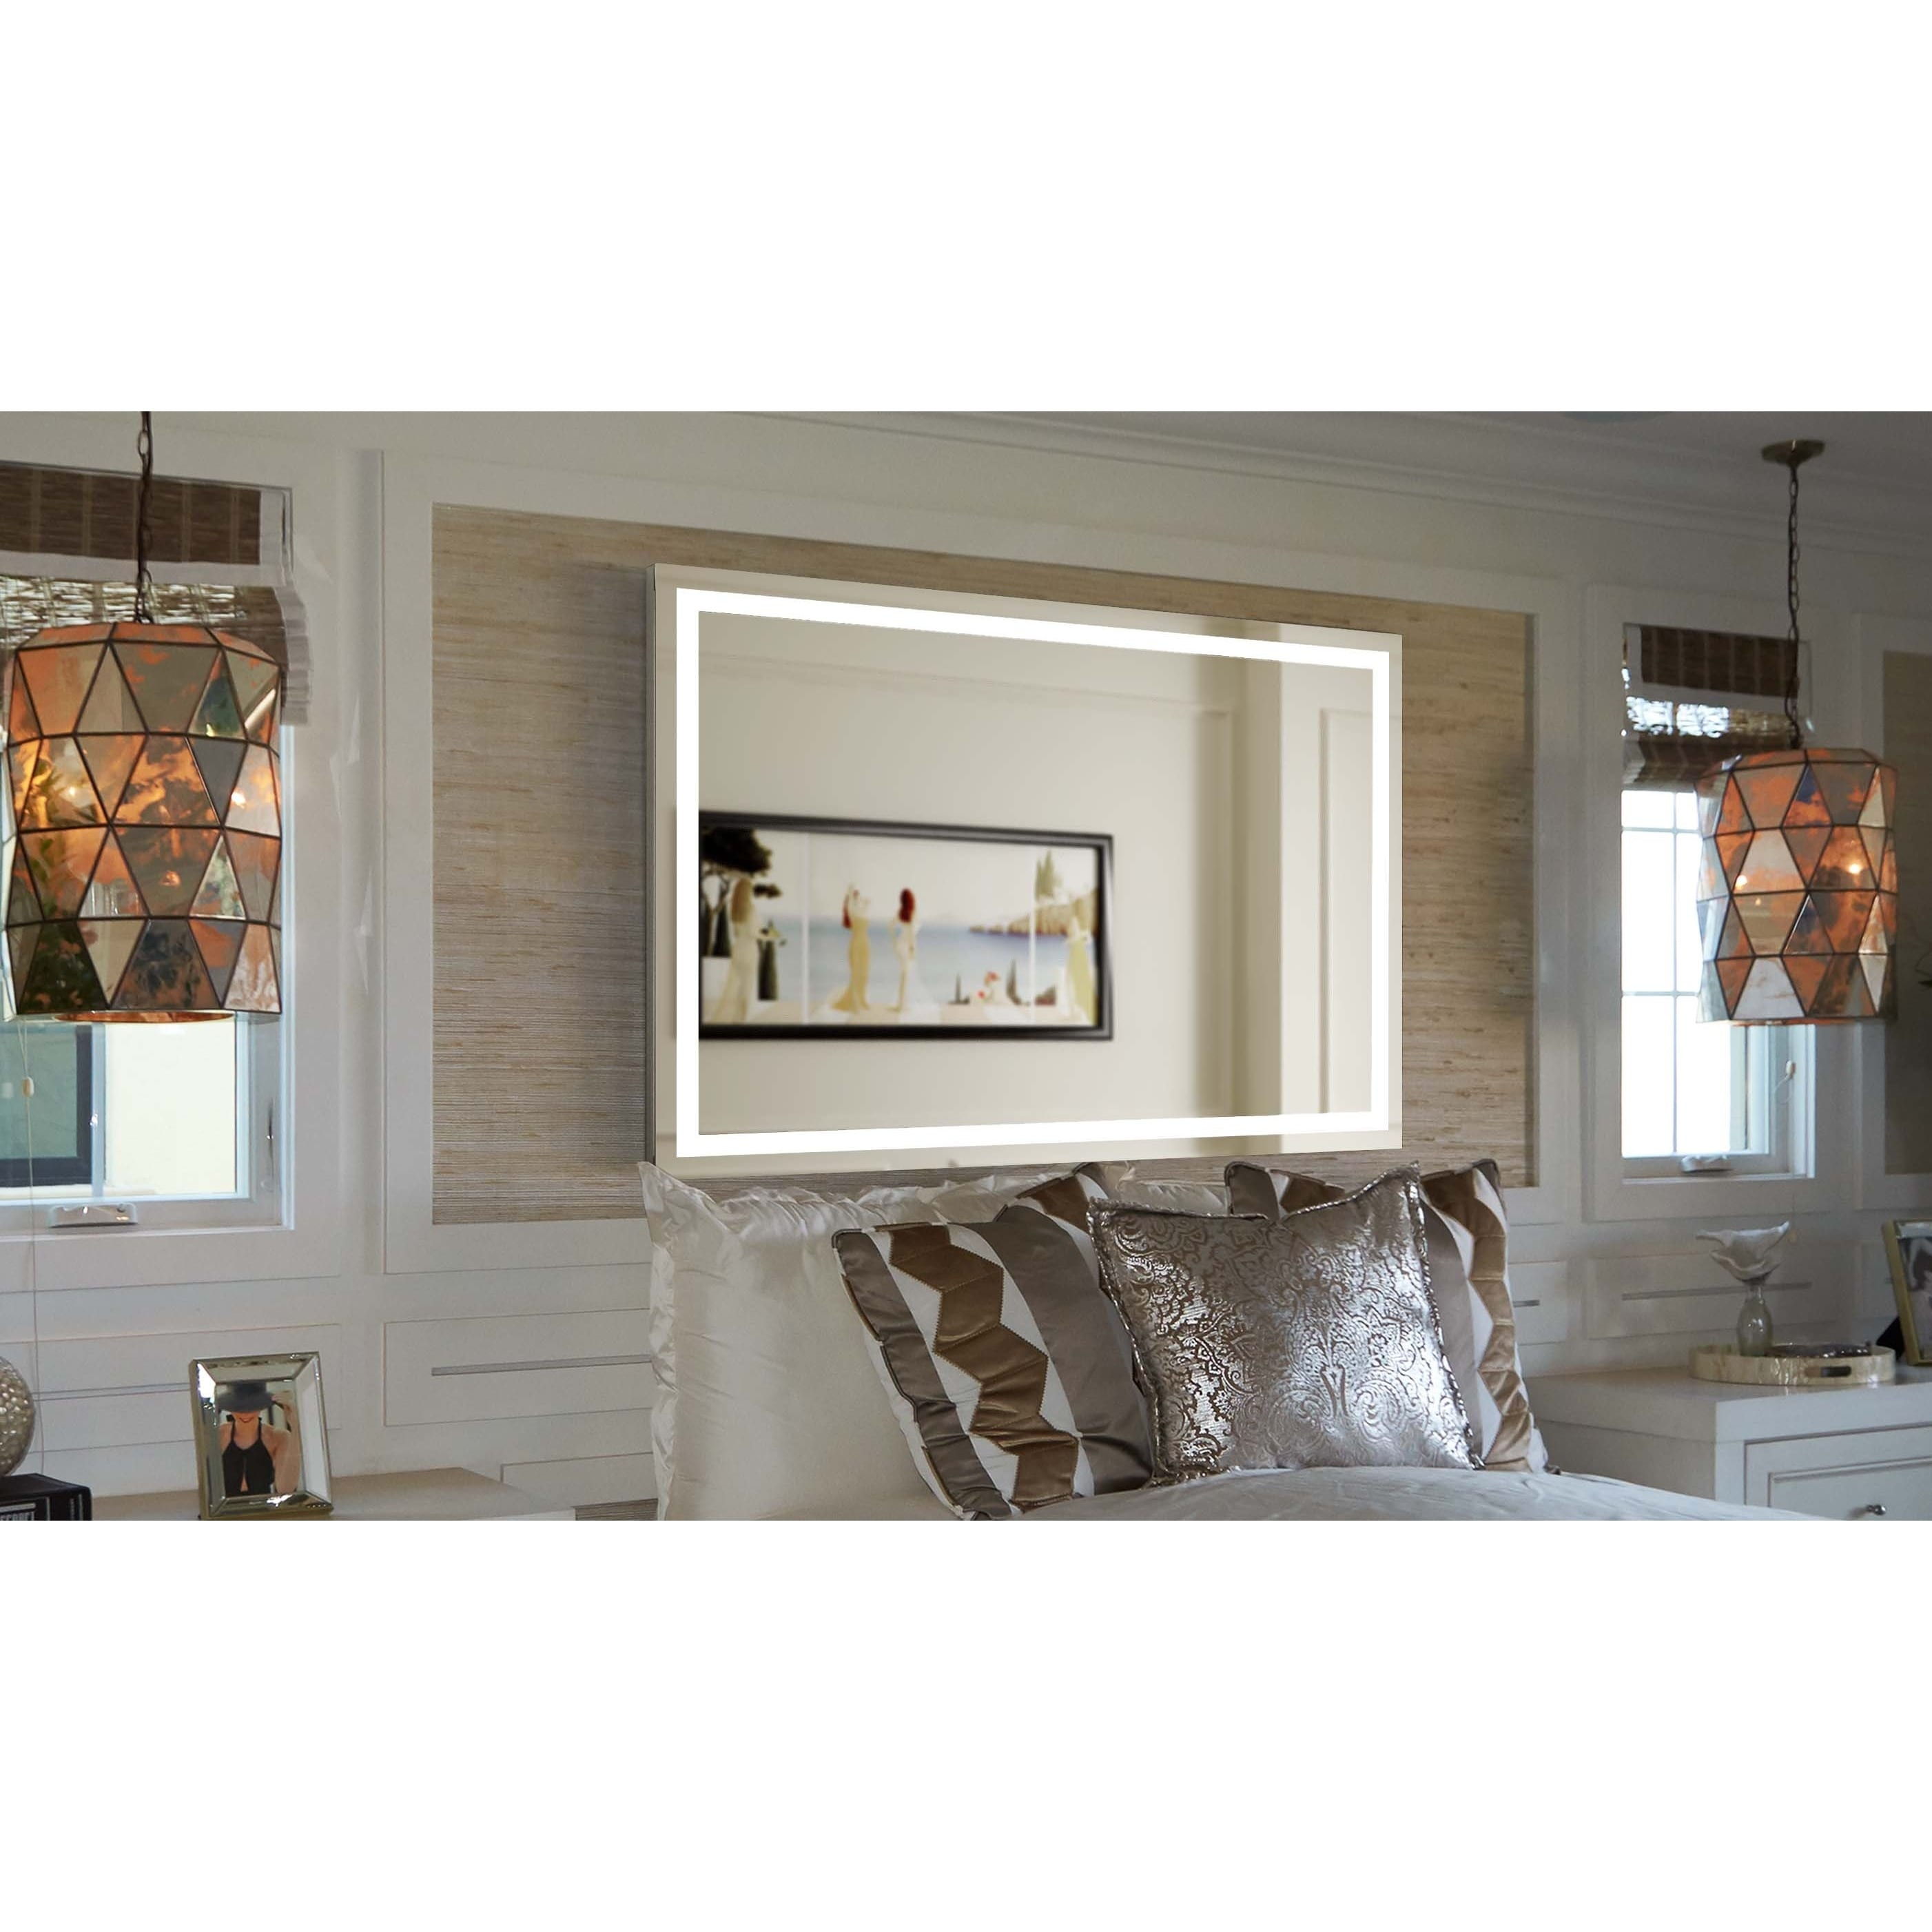 Innoci Usa Terra Led Wall Mount Lighted Vanity Mirror Overstock 11416276 22 X 35 Medium 15 32 High Horizontal